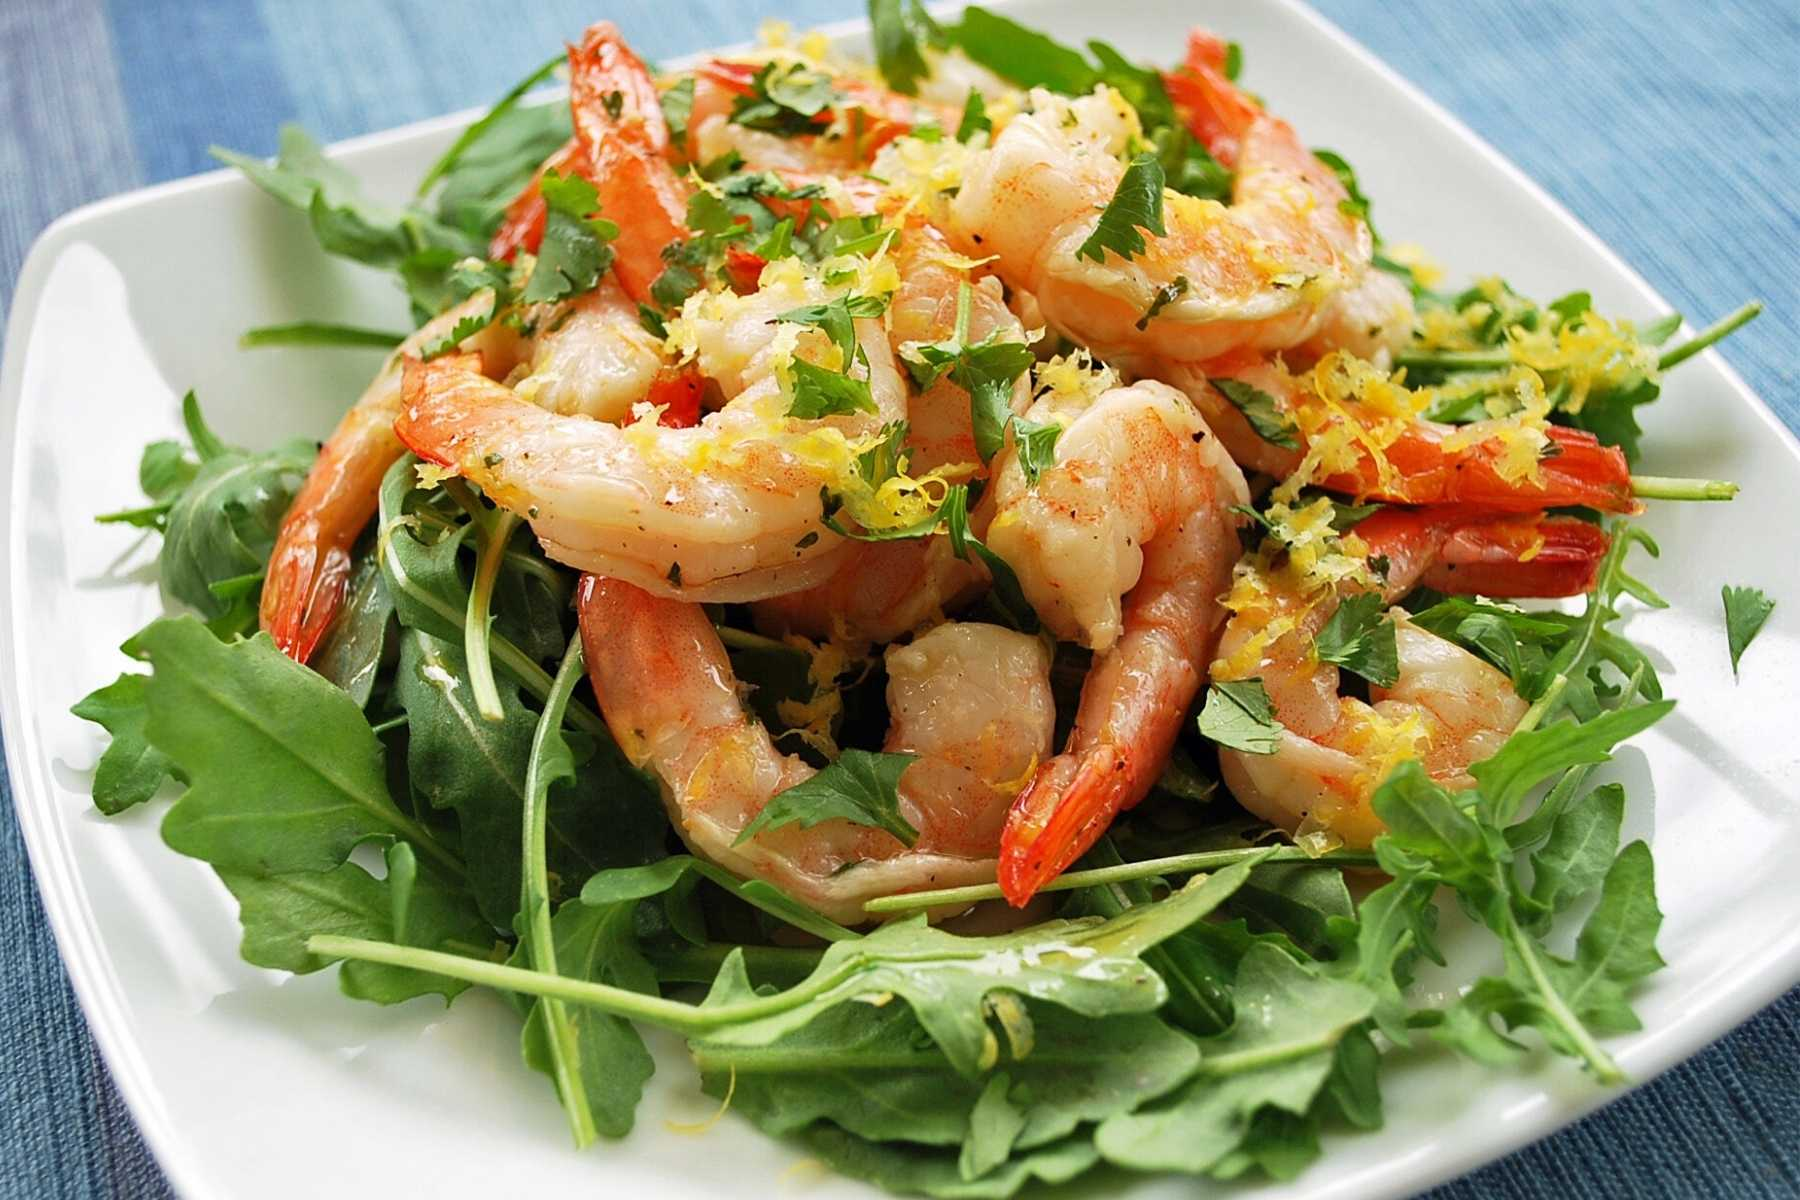 plate of shrimp over greens with fresh chopped herbs and lemon zest on top